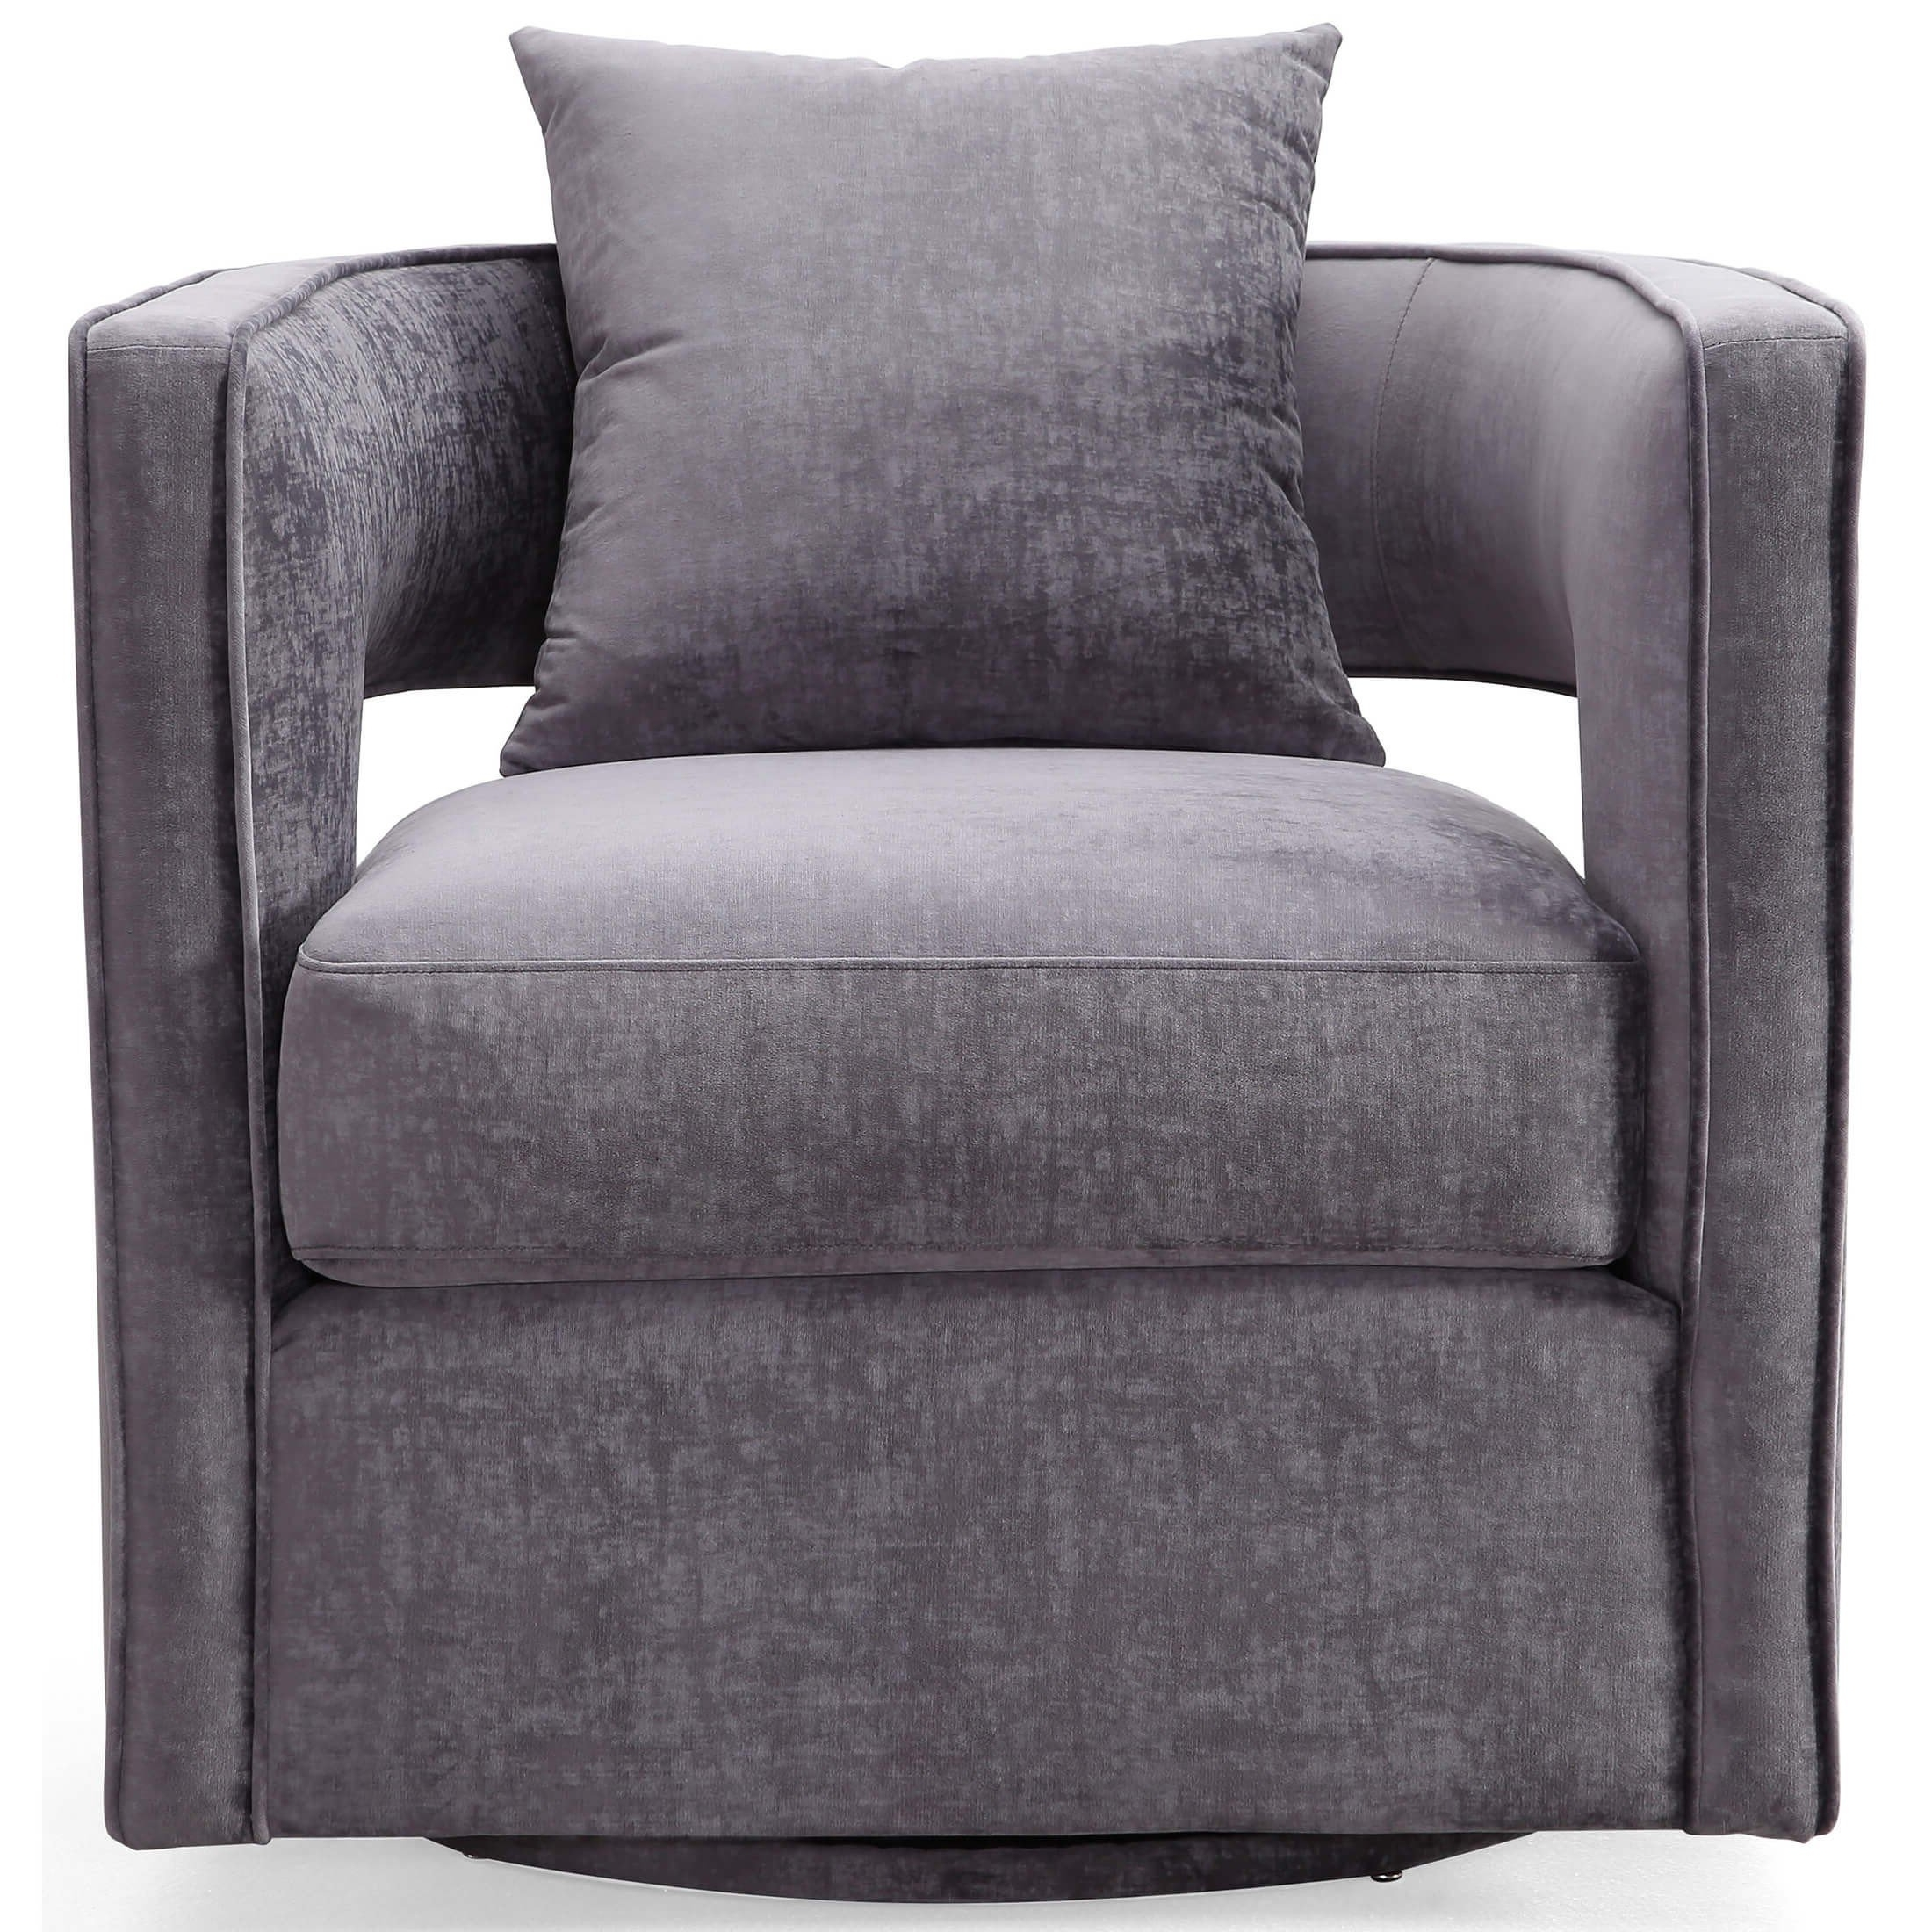 Picture 31 Of 35 – Oversized Round Chair Inspirational Sofas Pertaining To Well Known Swivel Sofa Chairs (View 12 of 20)